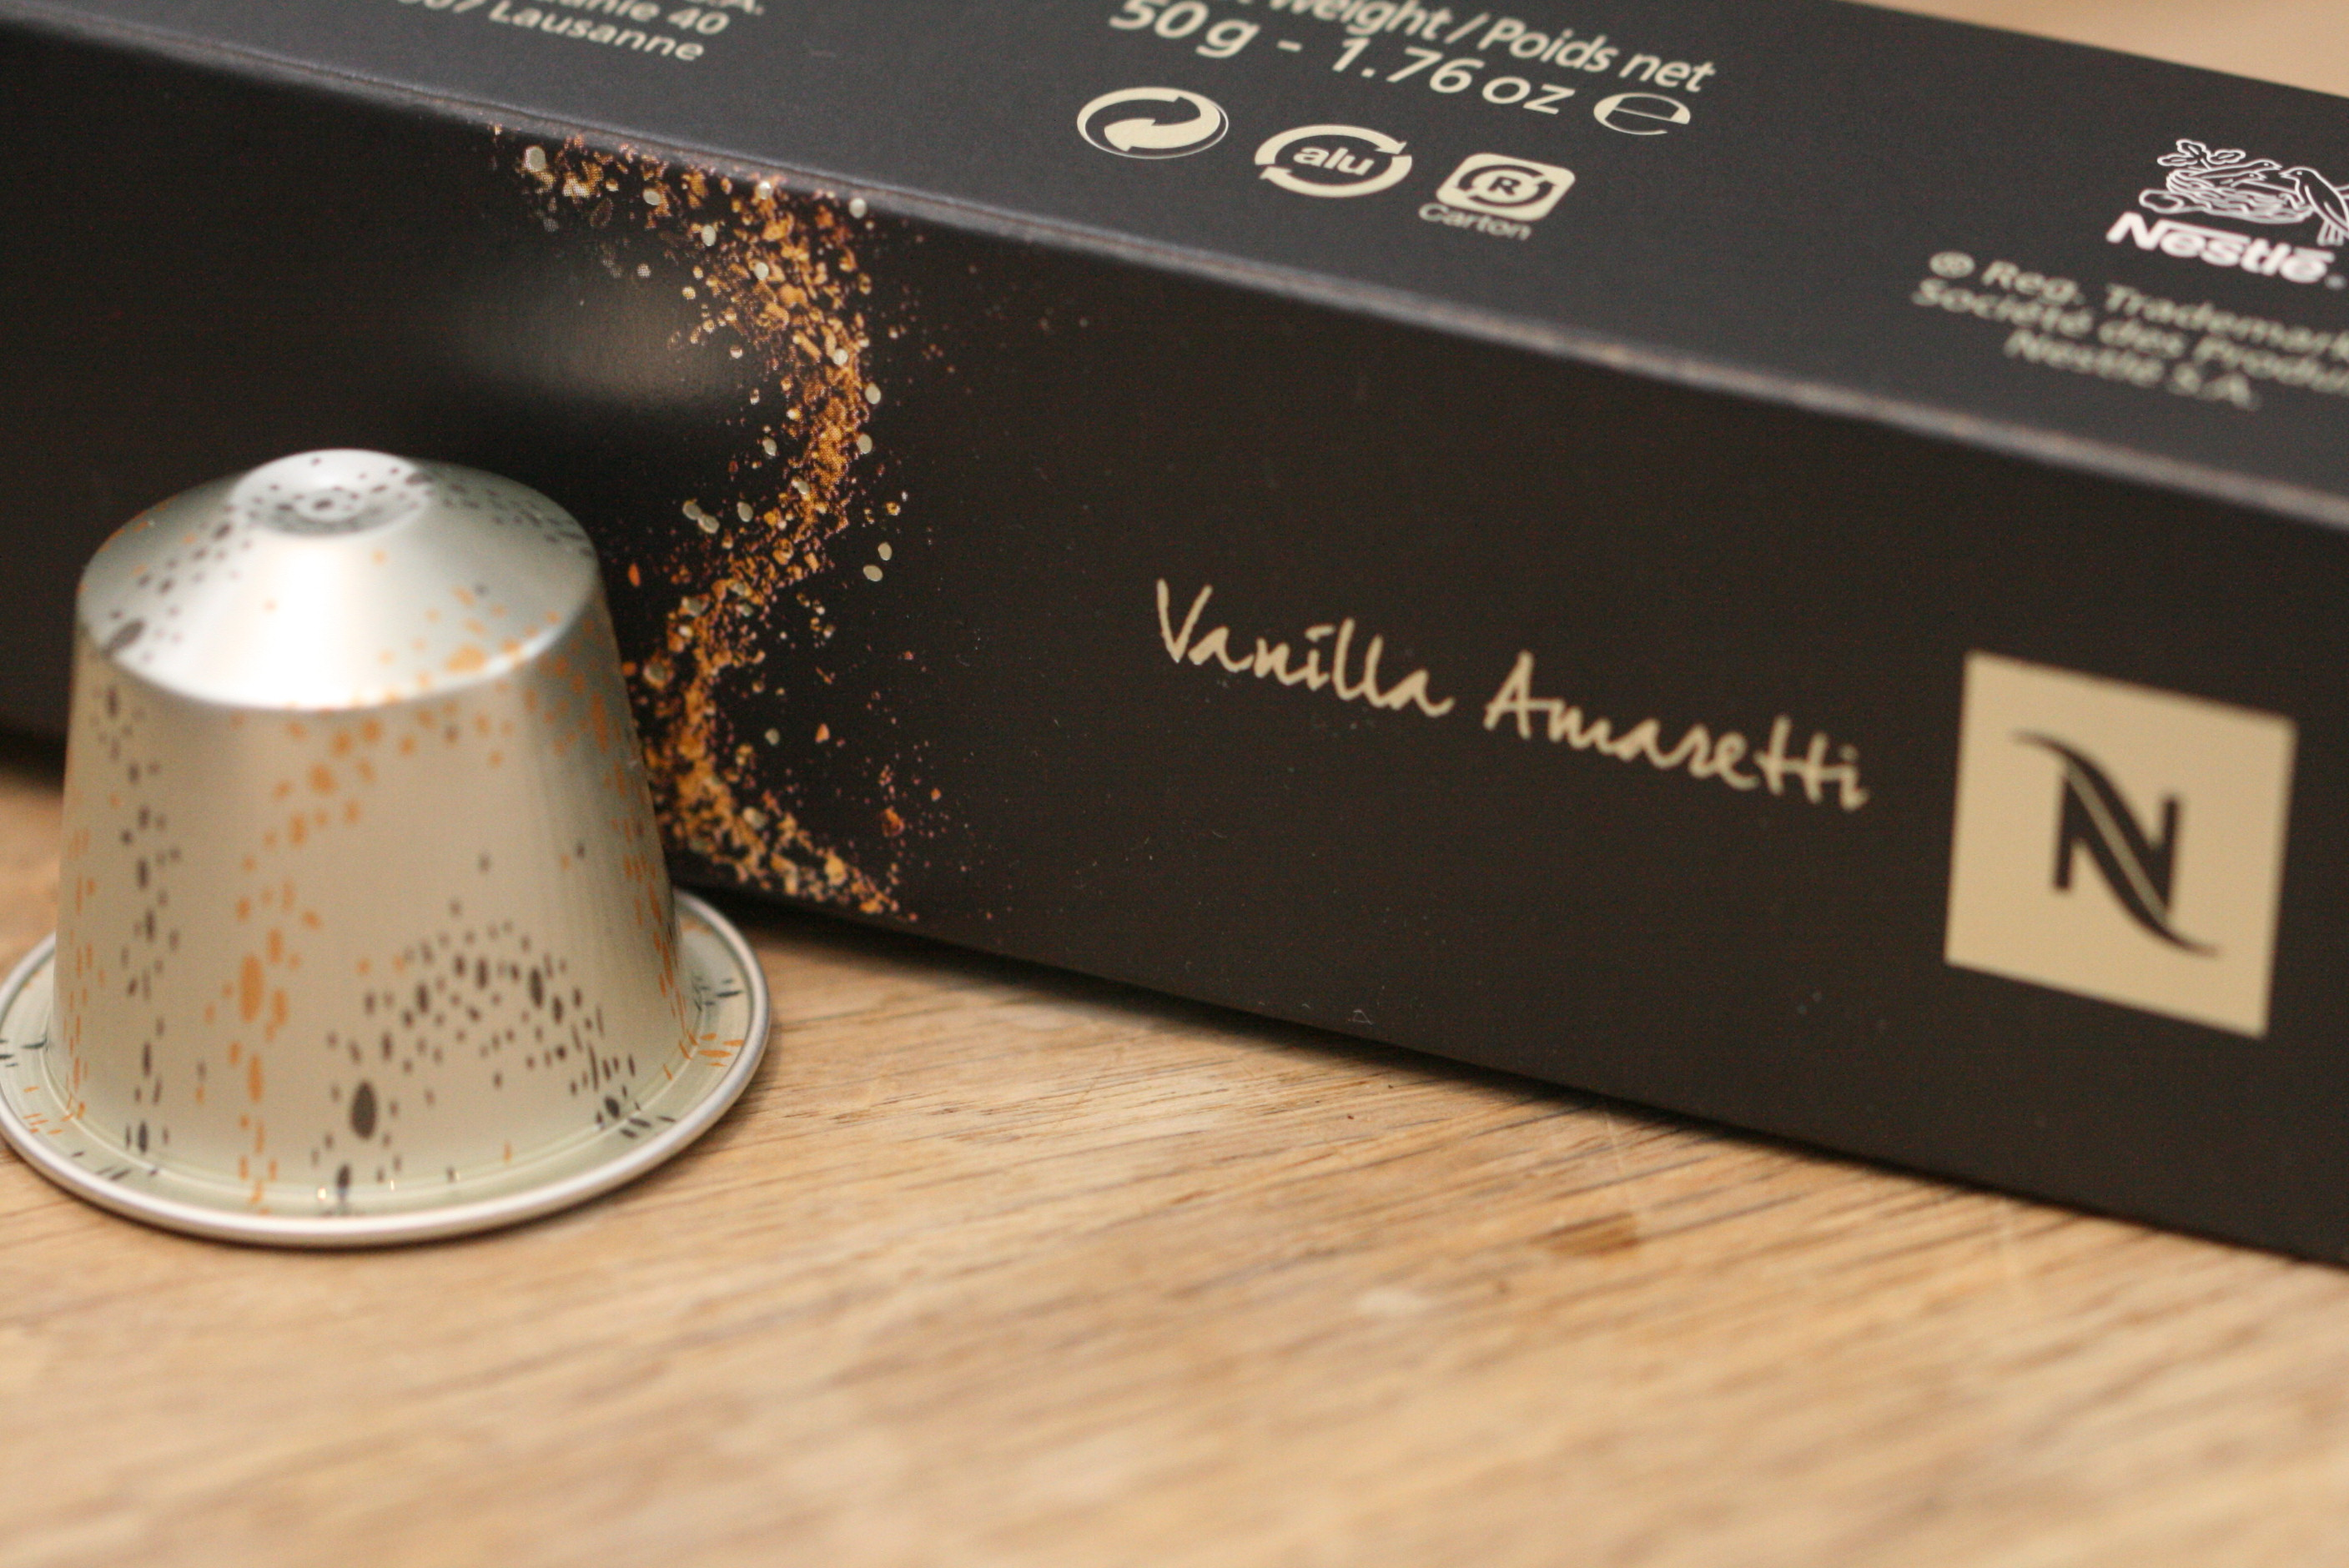 New coffee indulgence un nouveau coup de coeur caf jaf in the box - Tasses a cafe nespresso ...